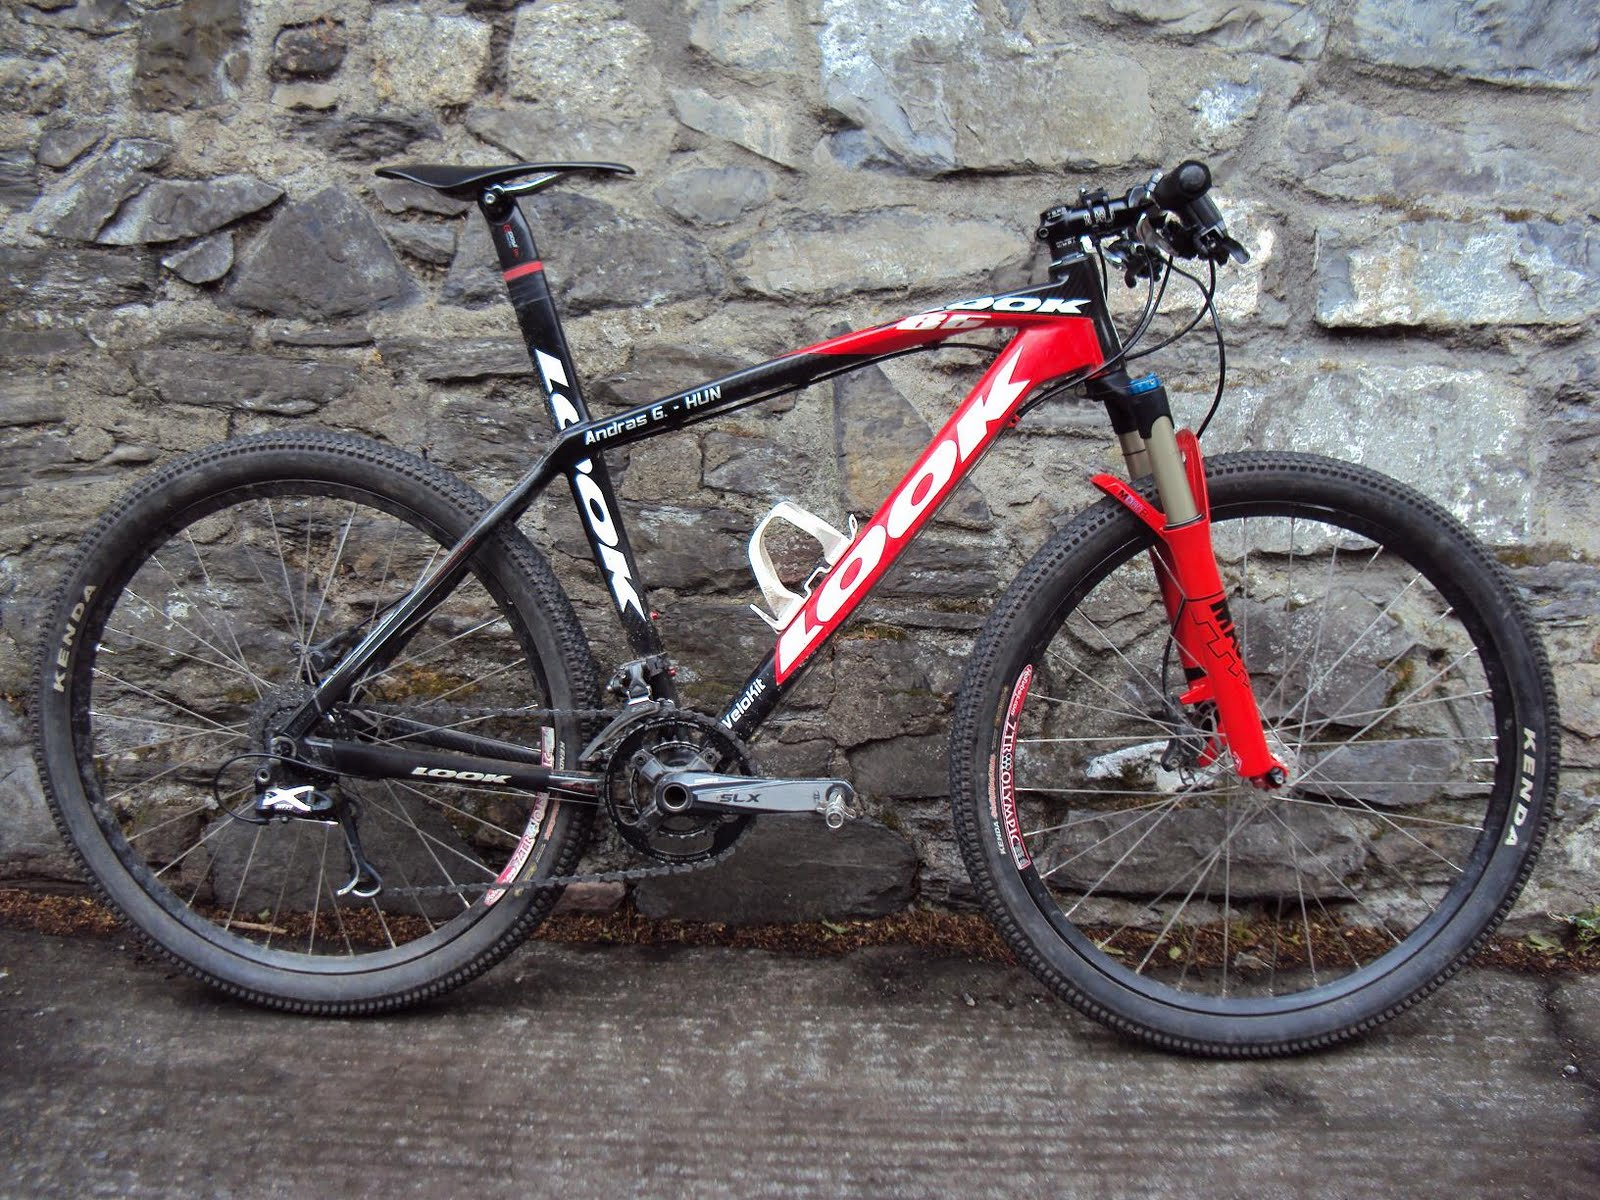 András Gercsényi XC Mountain Biker: Look 986 - My bike that never ...